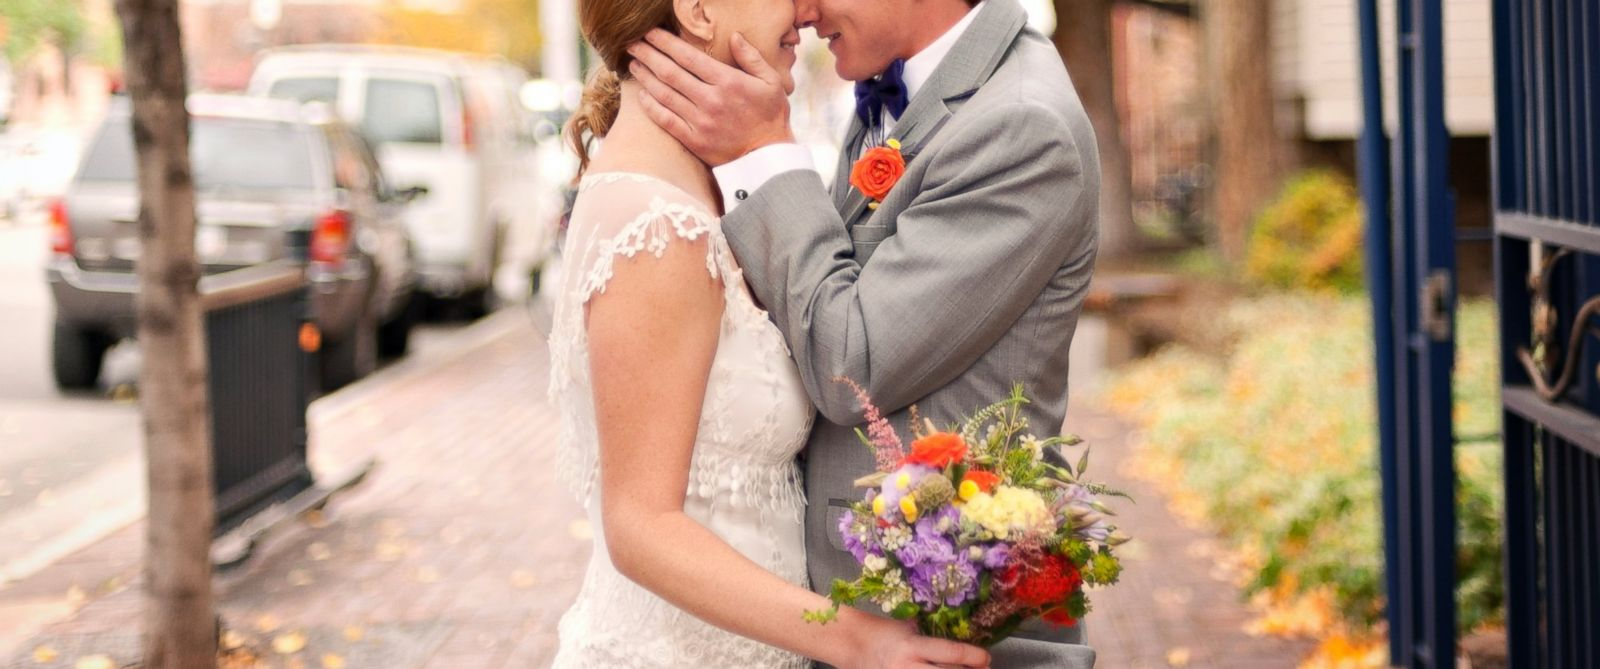 PHOTO: Flash weddings and elopements are gaining popularity.